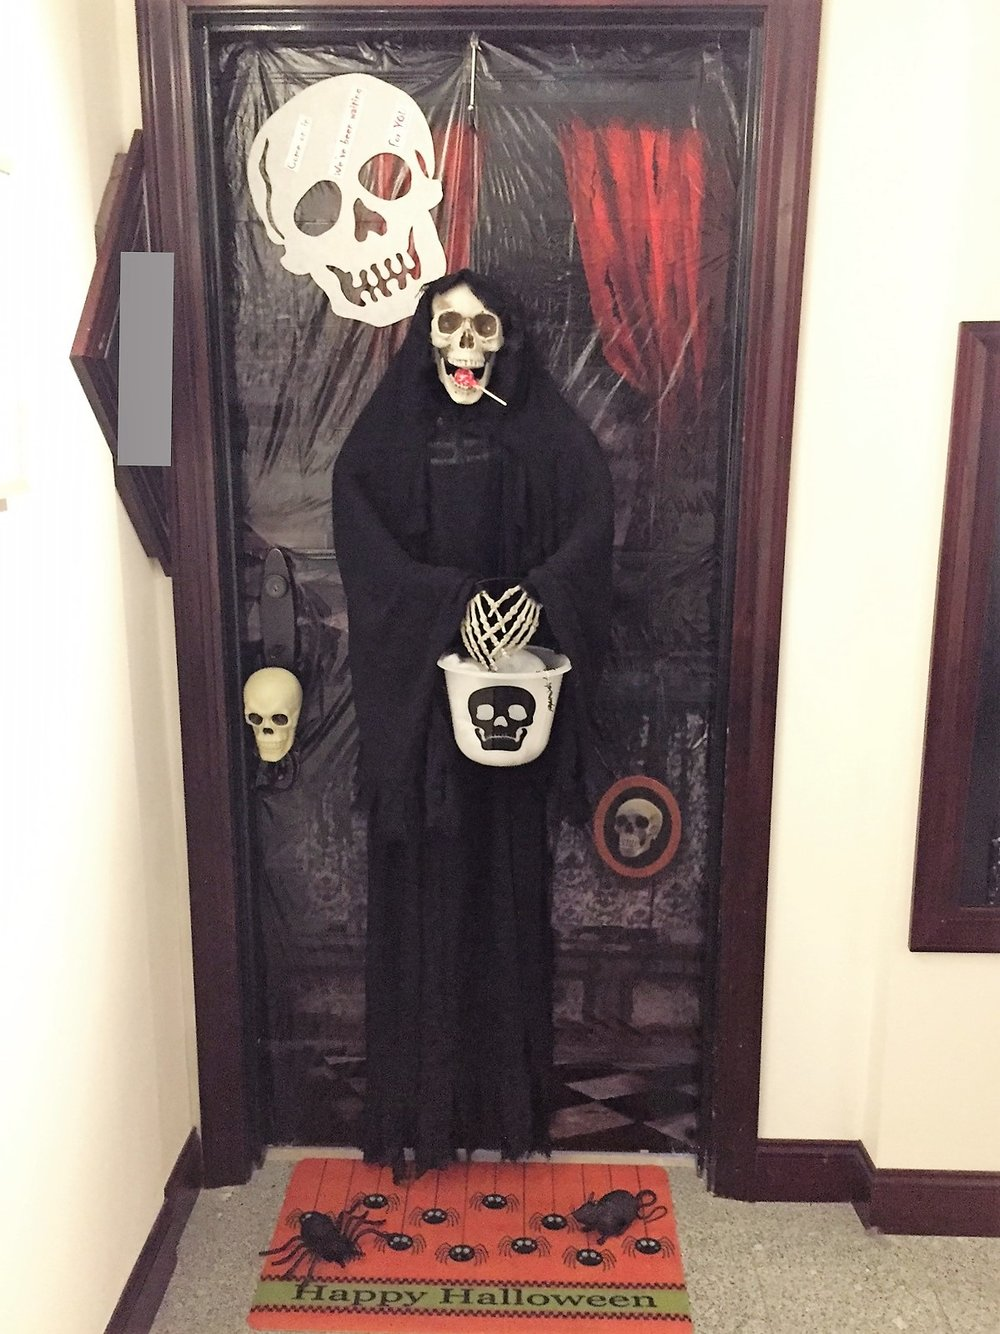 "Entry 1 - John Doe - Trick or Treating Skeleton ""Come on in, We've been waiting for you"""